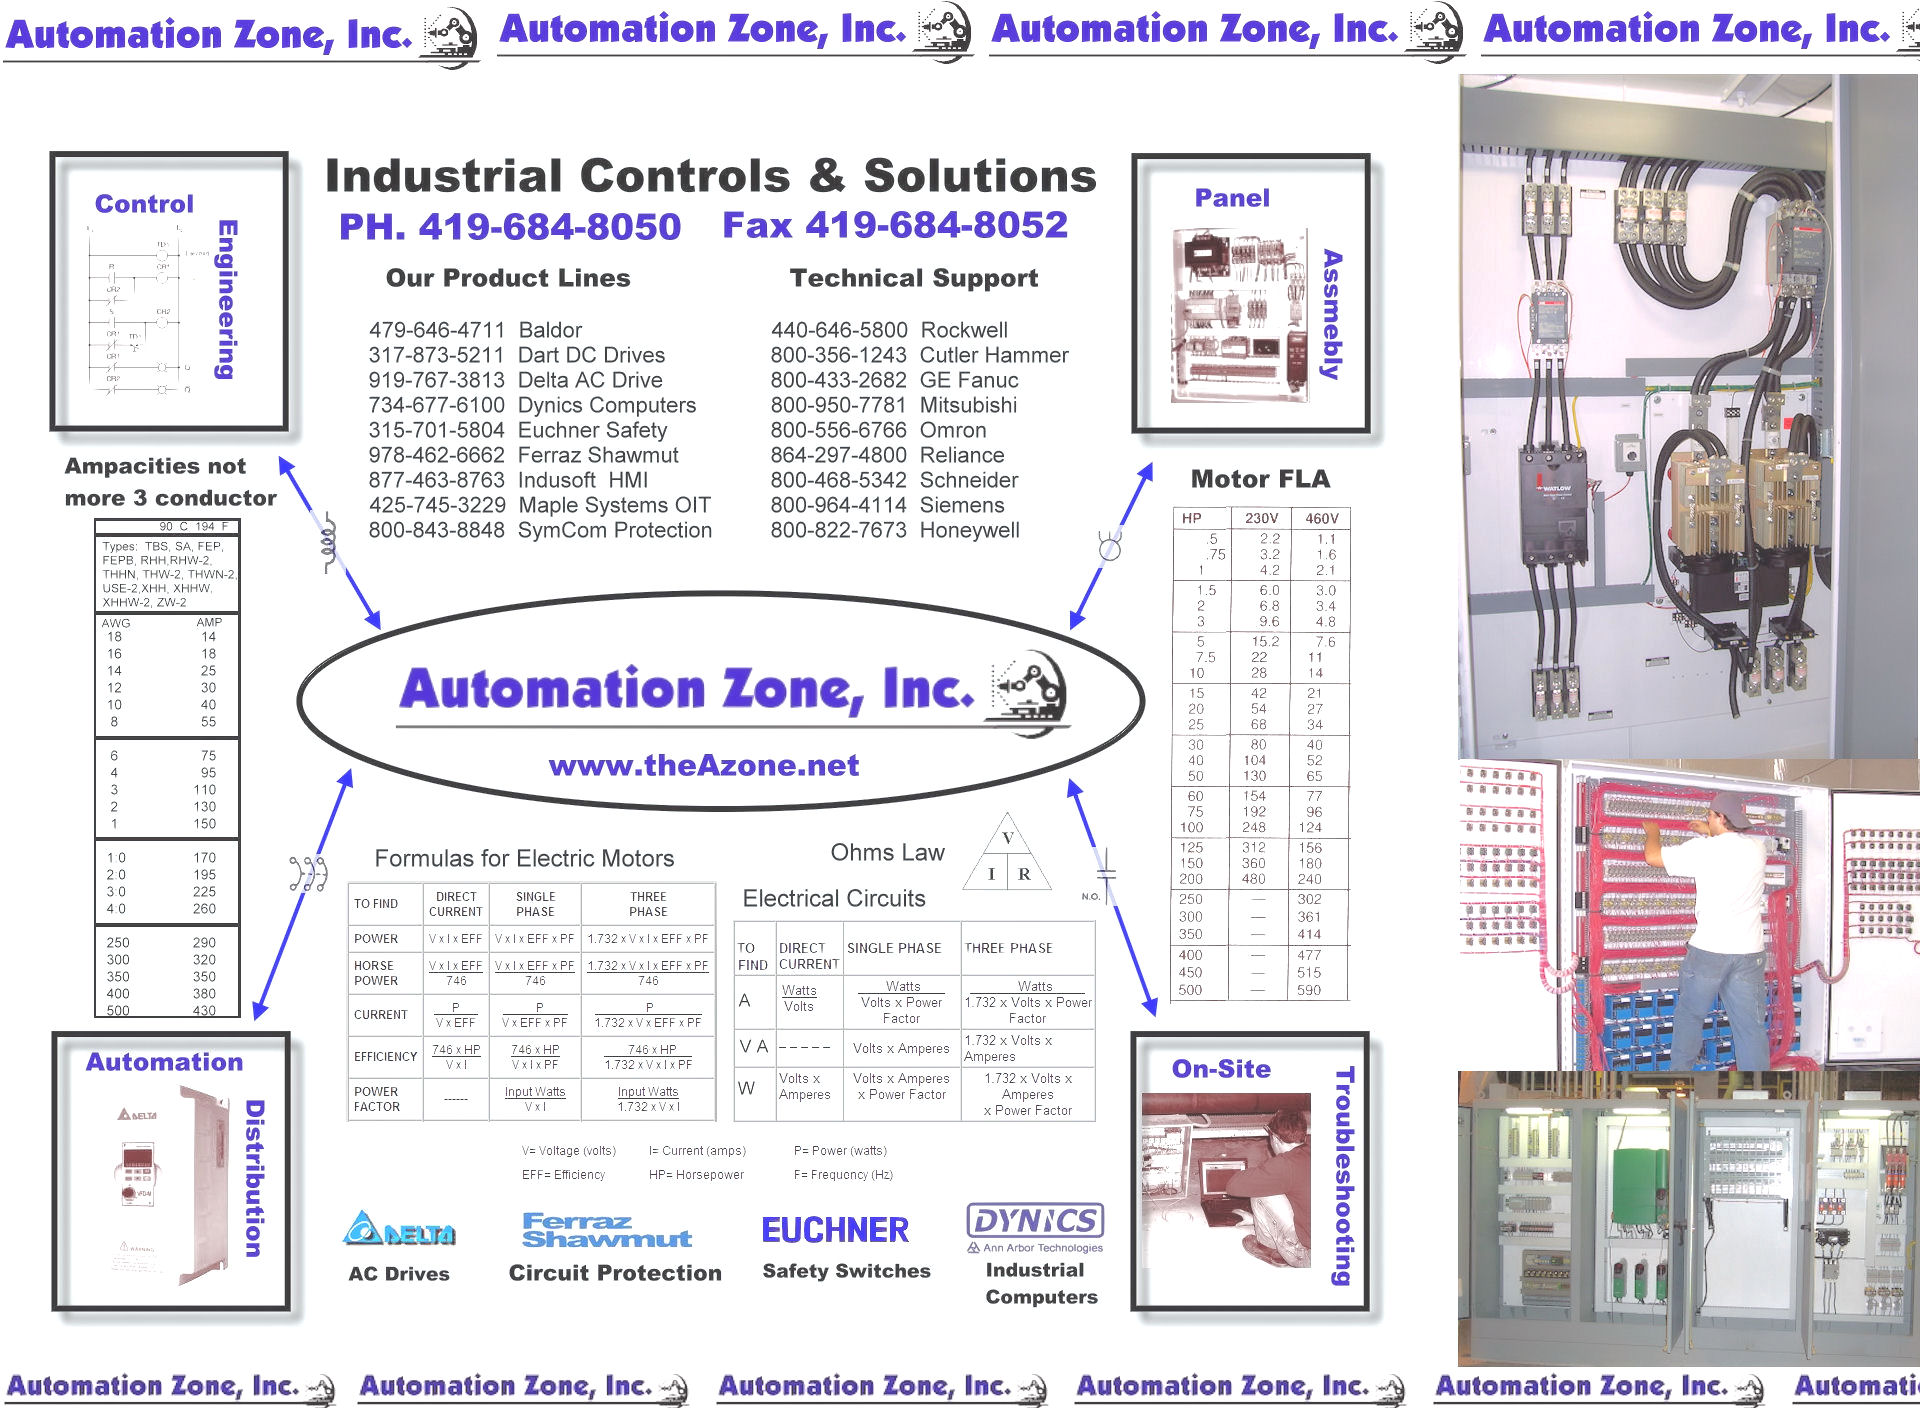 Get your free Automation Zone mouse pad with electrical formulas, Motor FLA, Wire Sizing and support links.